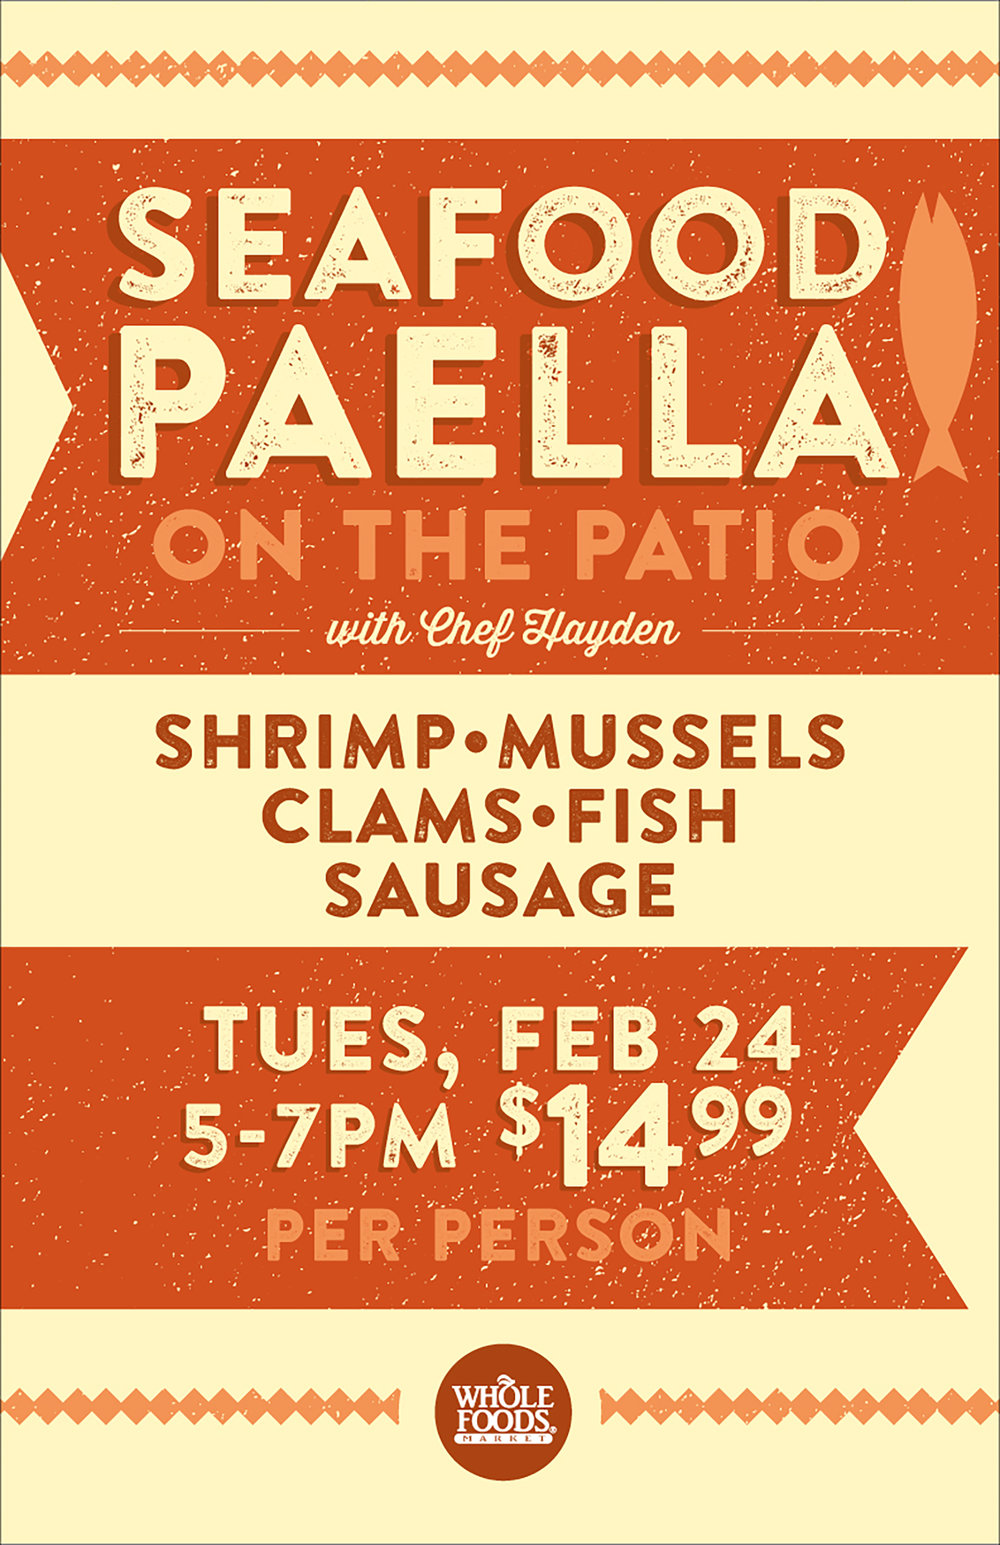 paella on the patio  This poster, along with several social media graphics helped call attention to the event held on the patio of Whole Foods Market - South Lake Union